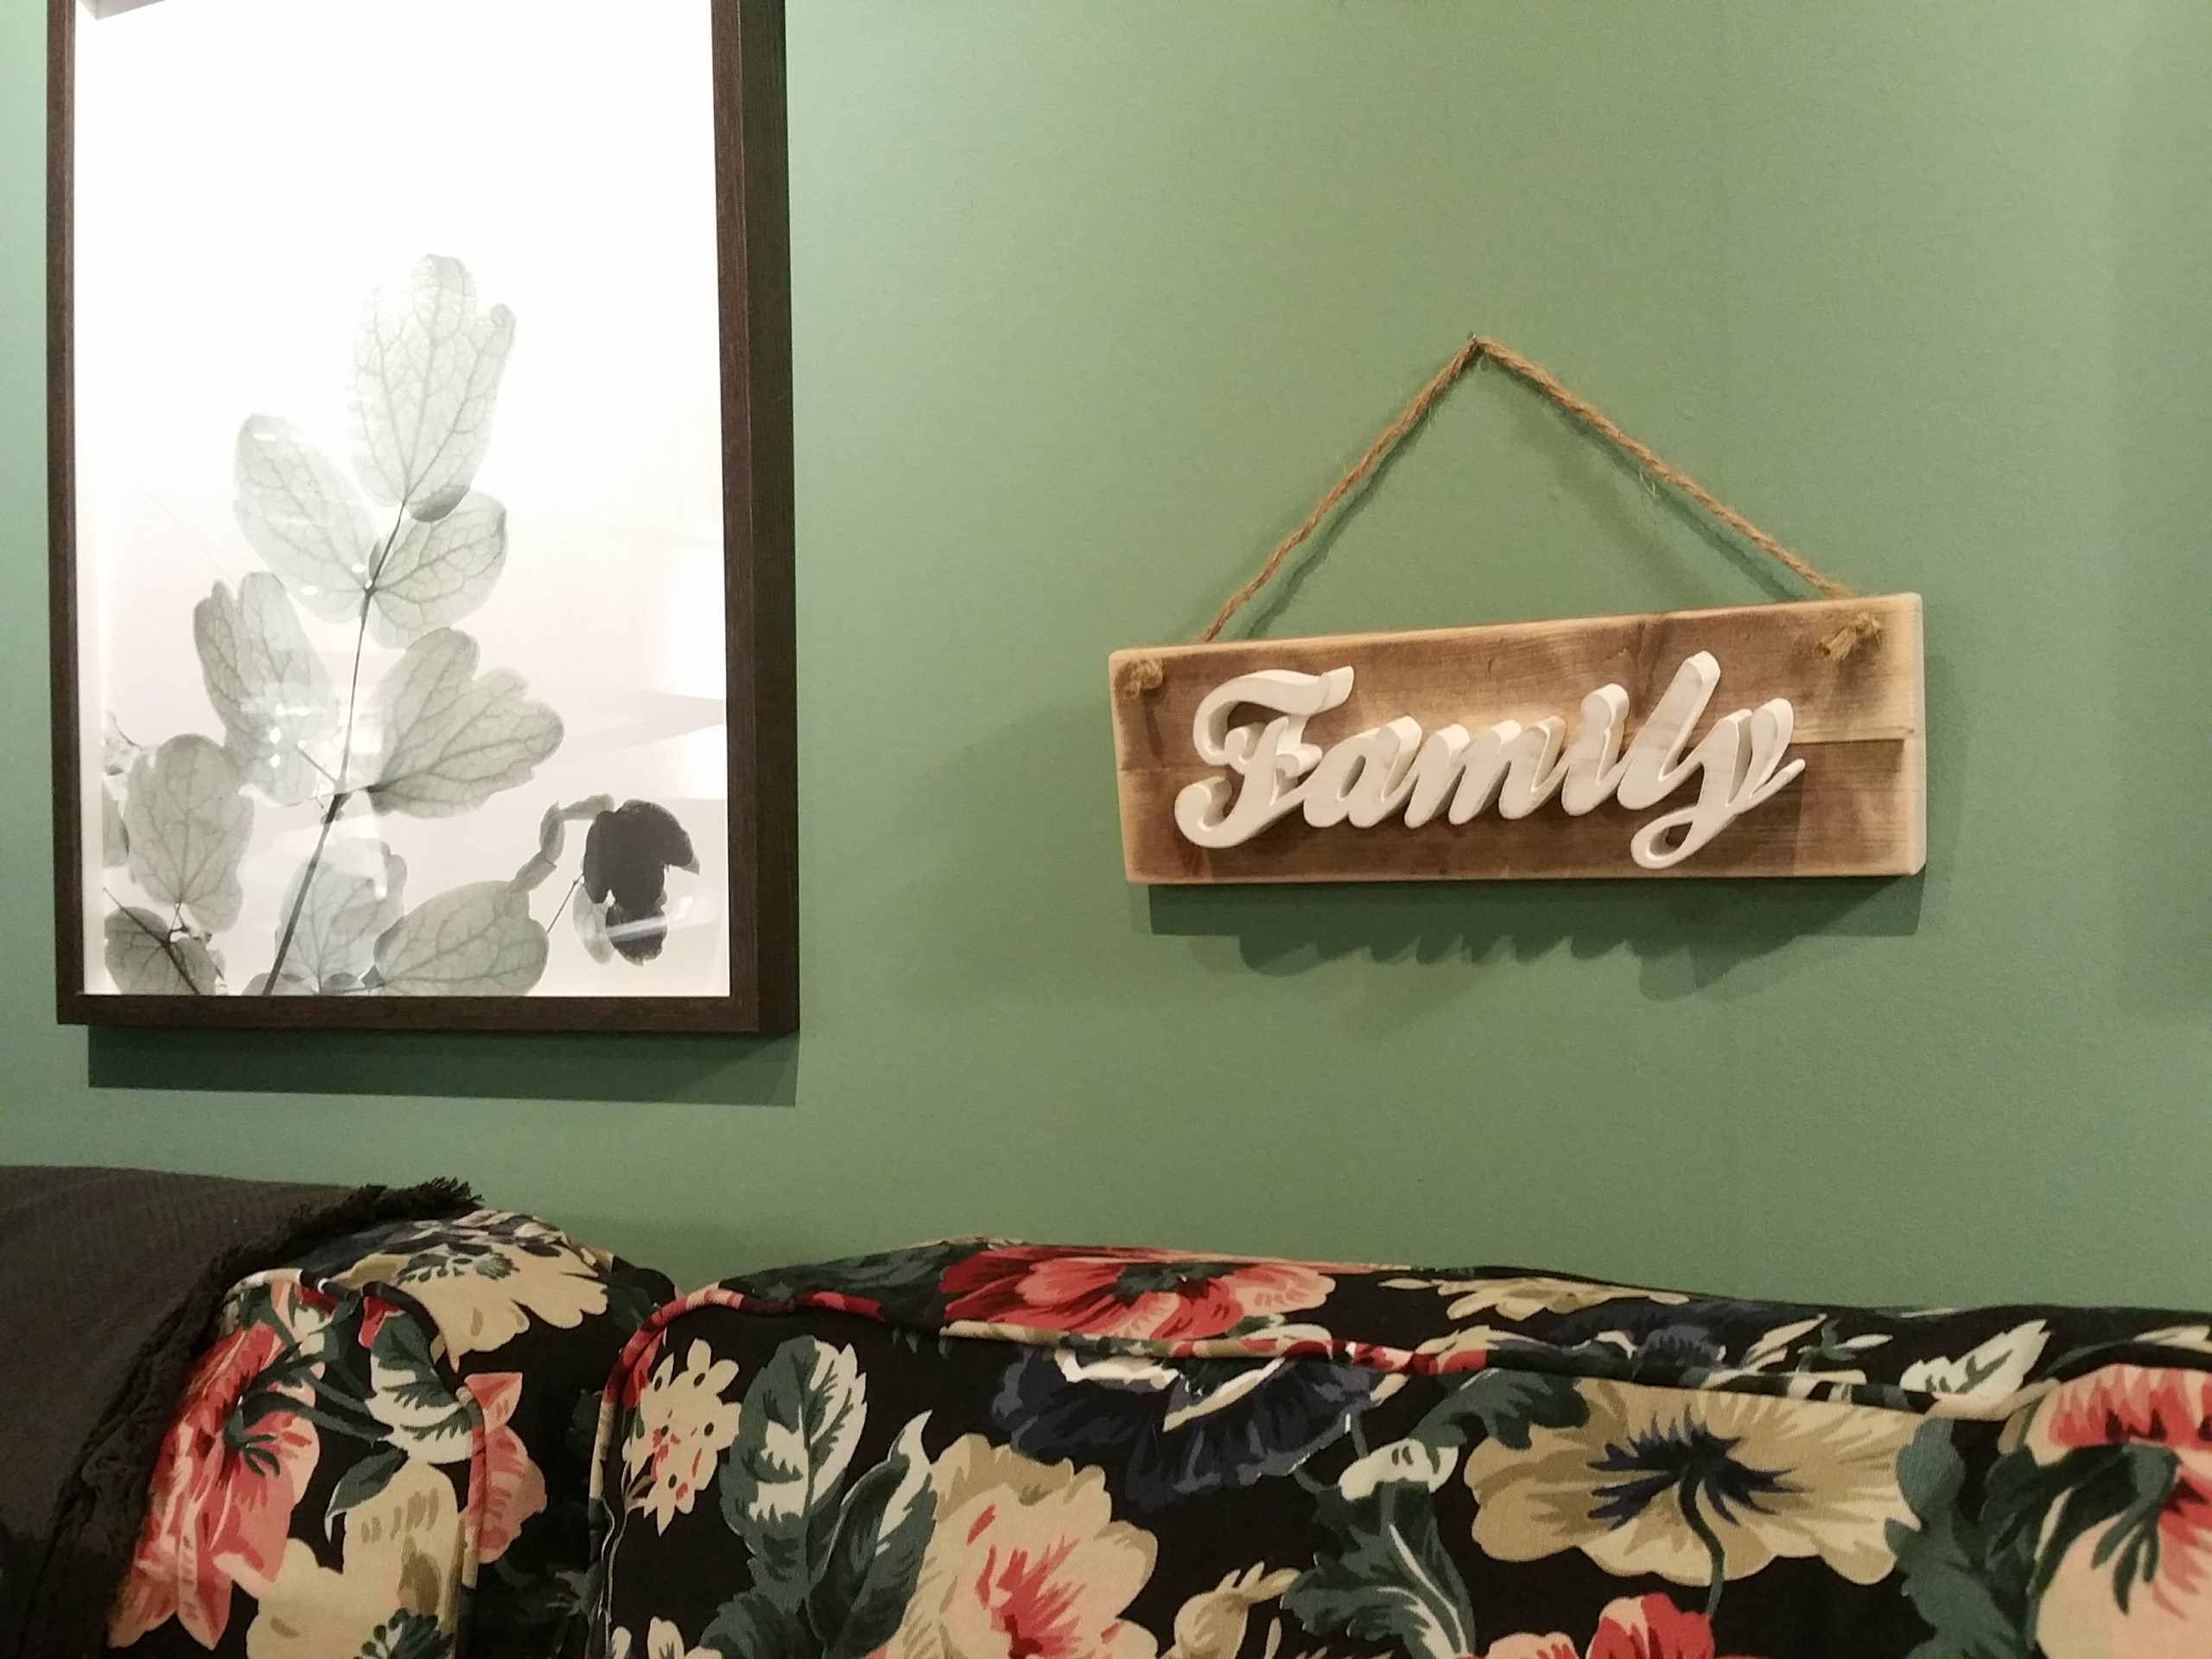 Family word wall hanging Image